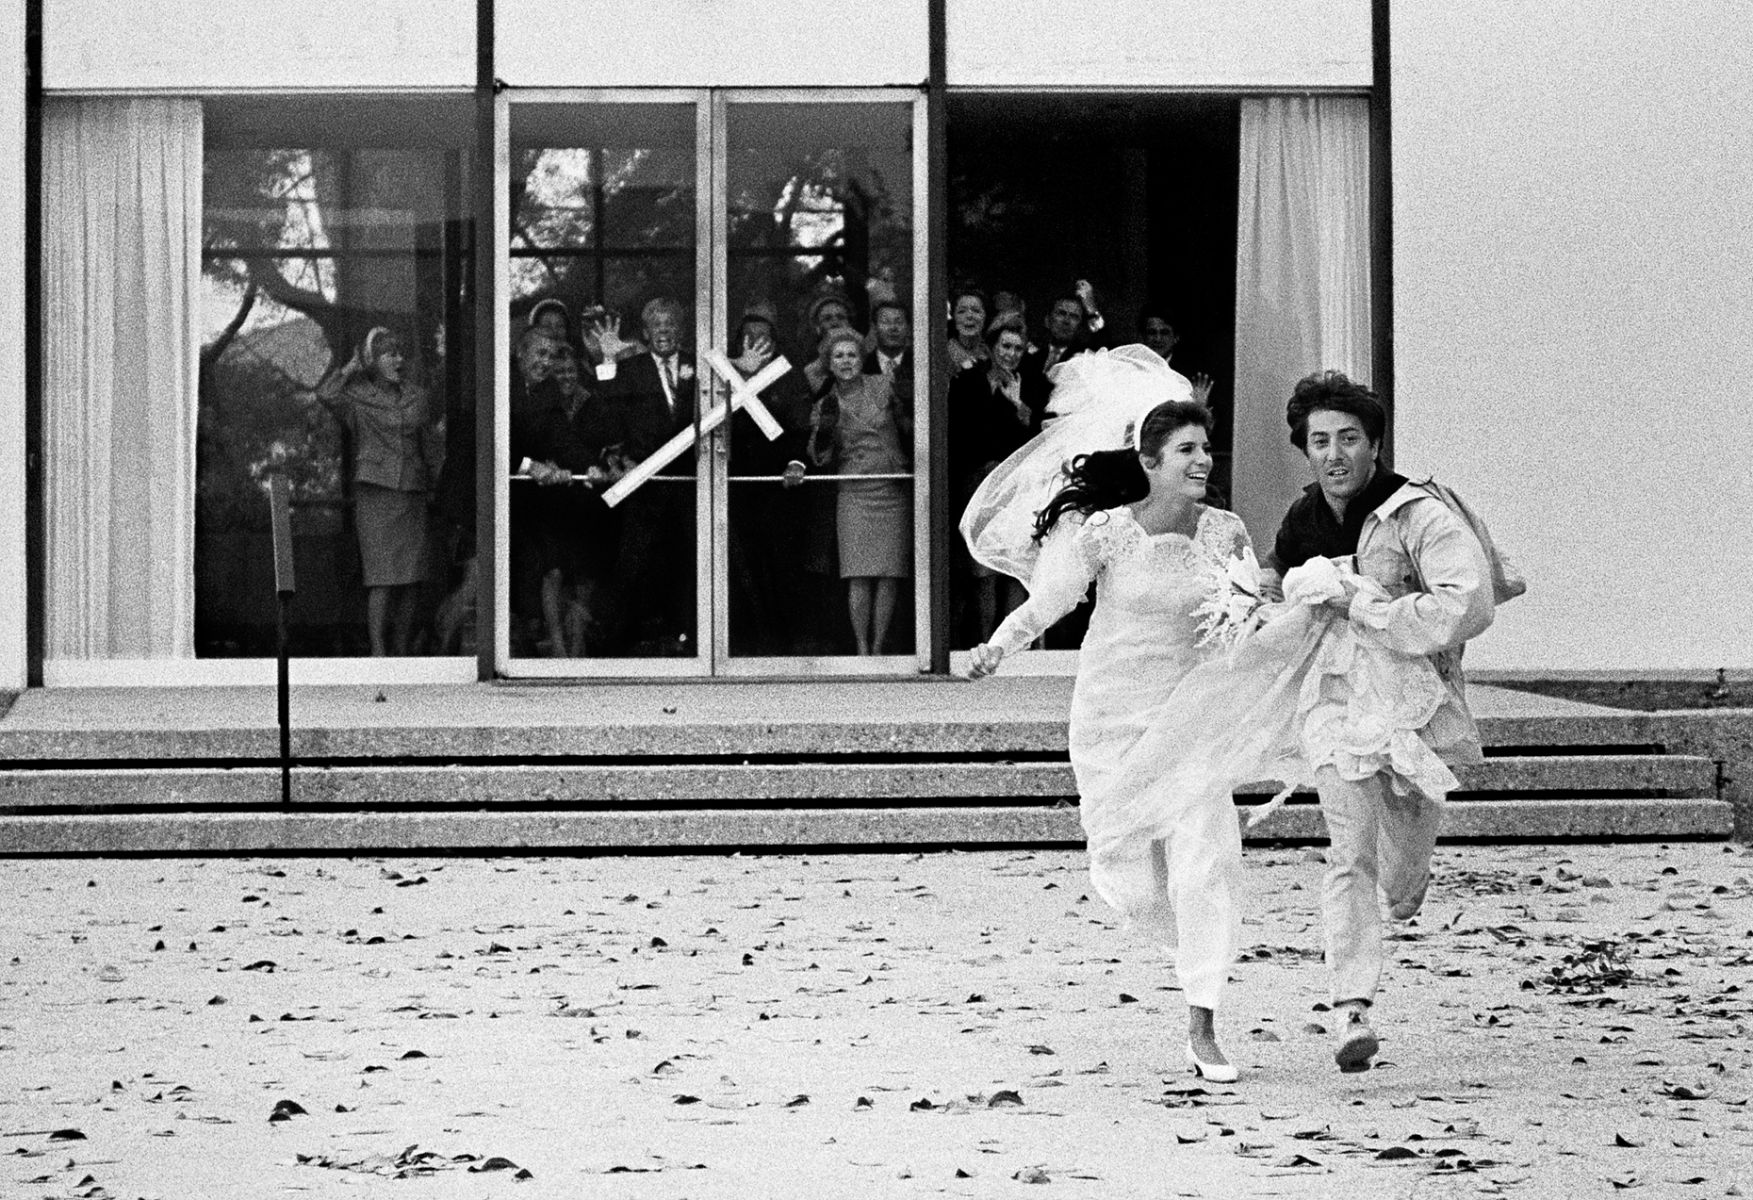 Katharine Ross and Dustin Hoffman running away from the church at the end of The Graduate, Paramount Studios, 1967.